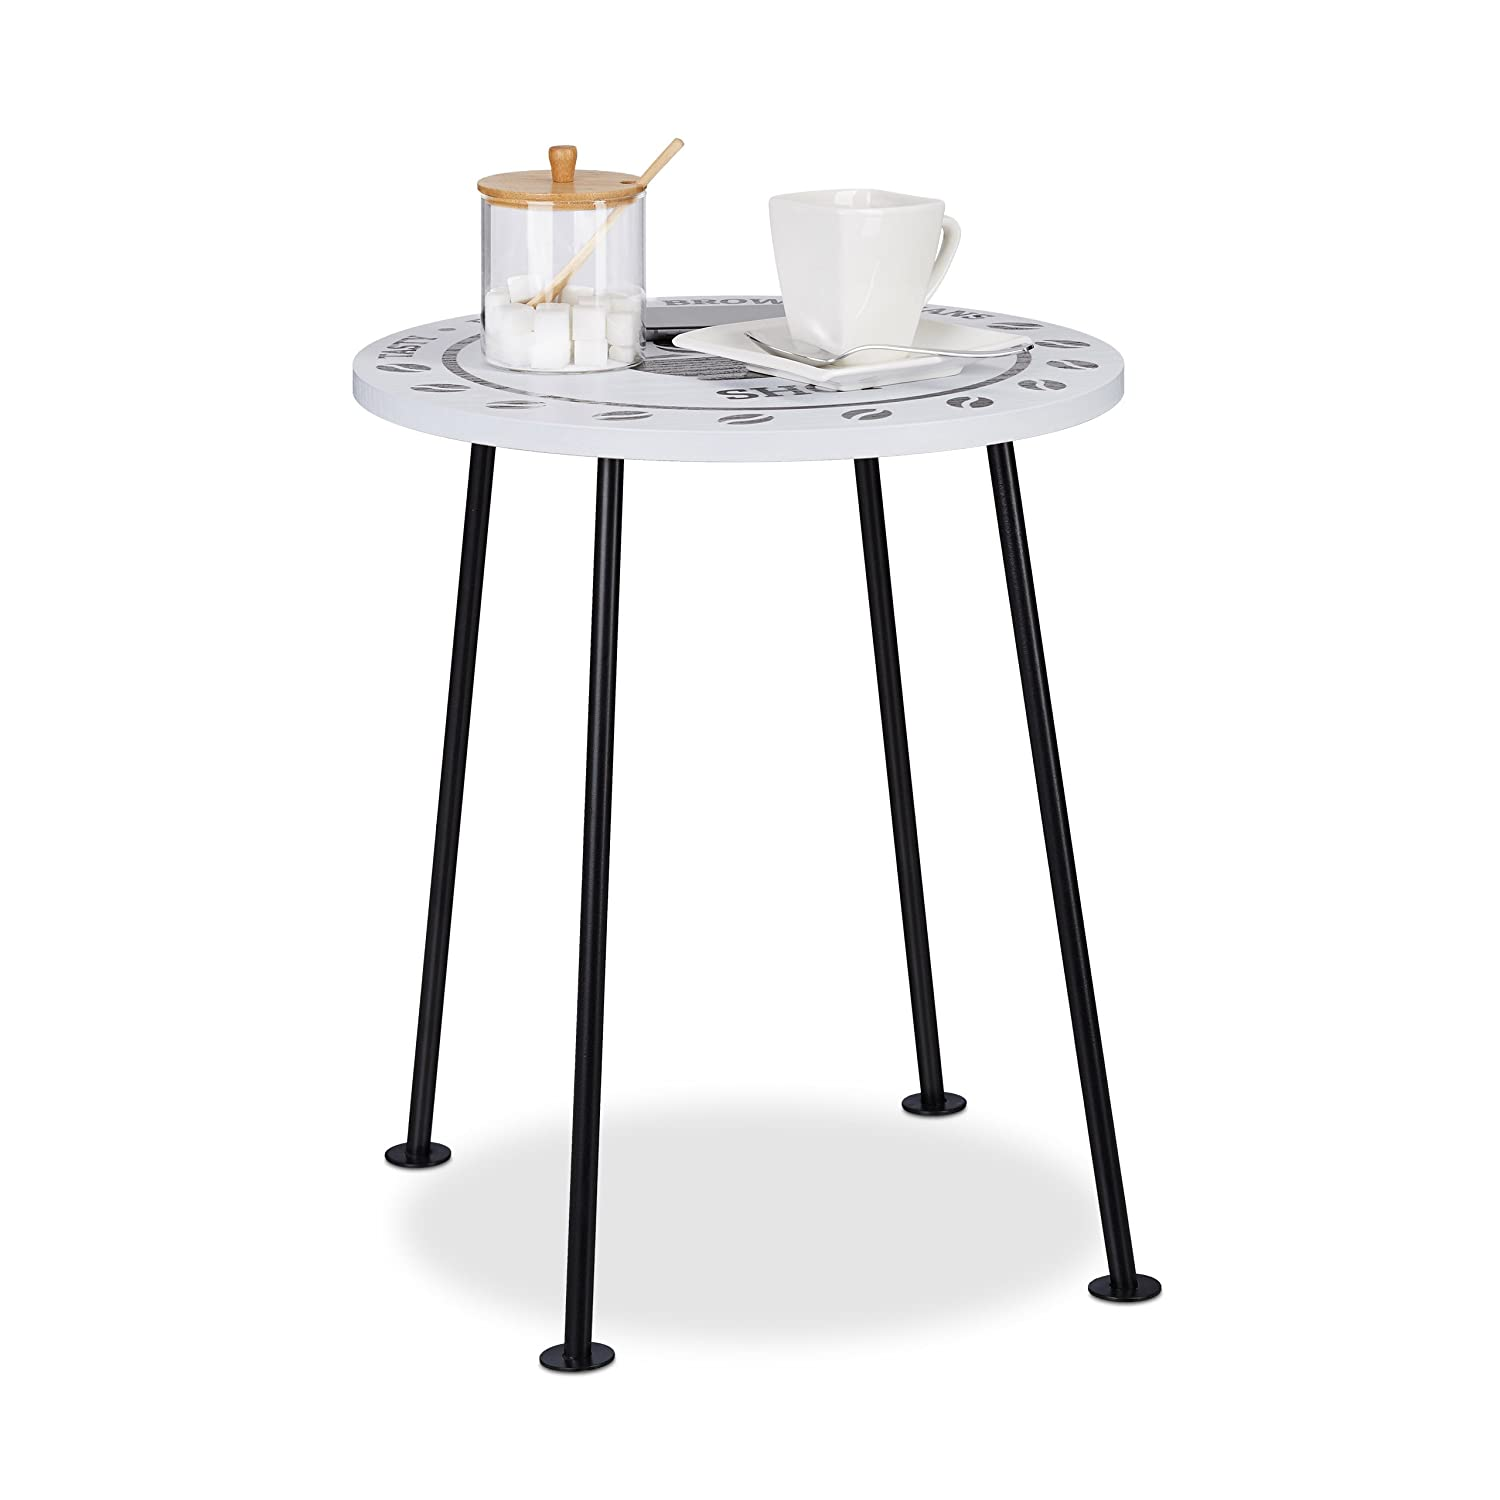 Relaxdays Small Coffee Table, Round Side Table in Coffee Shop Design, MDF & Metal, HWD: 46.5x40x40cm, Black/White 10021861